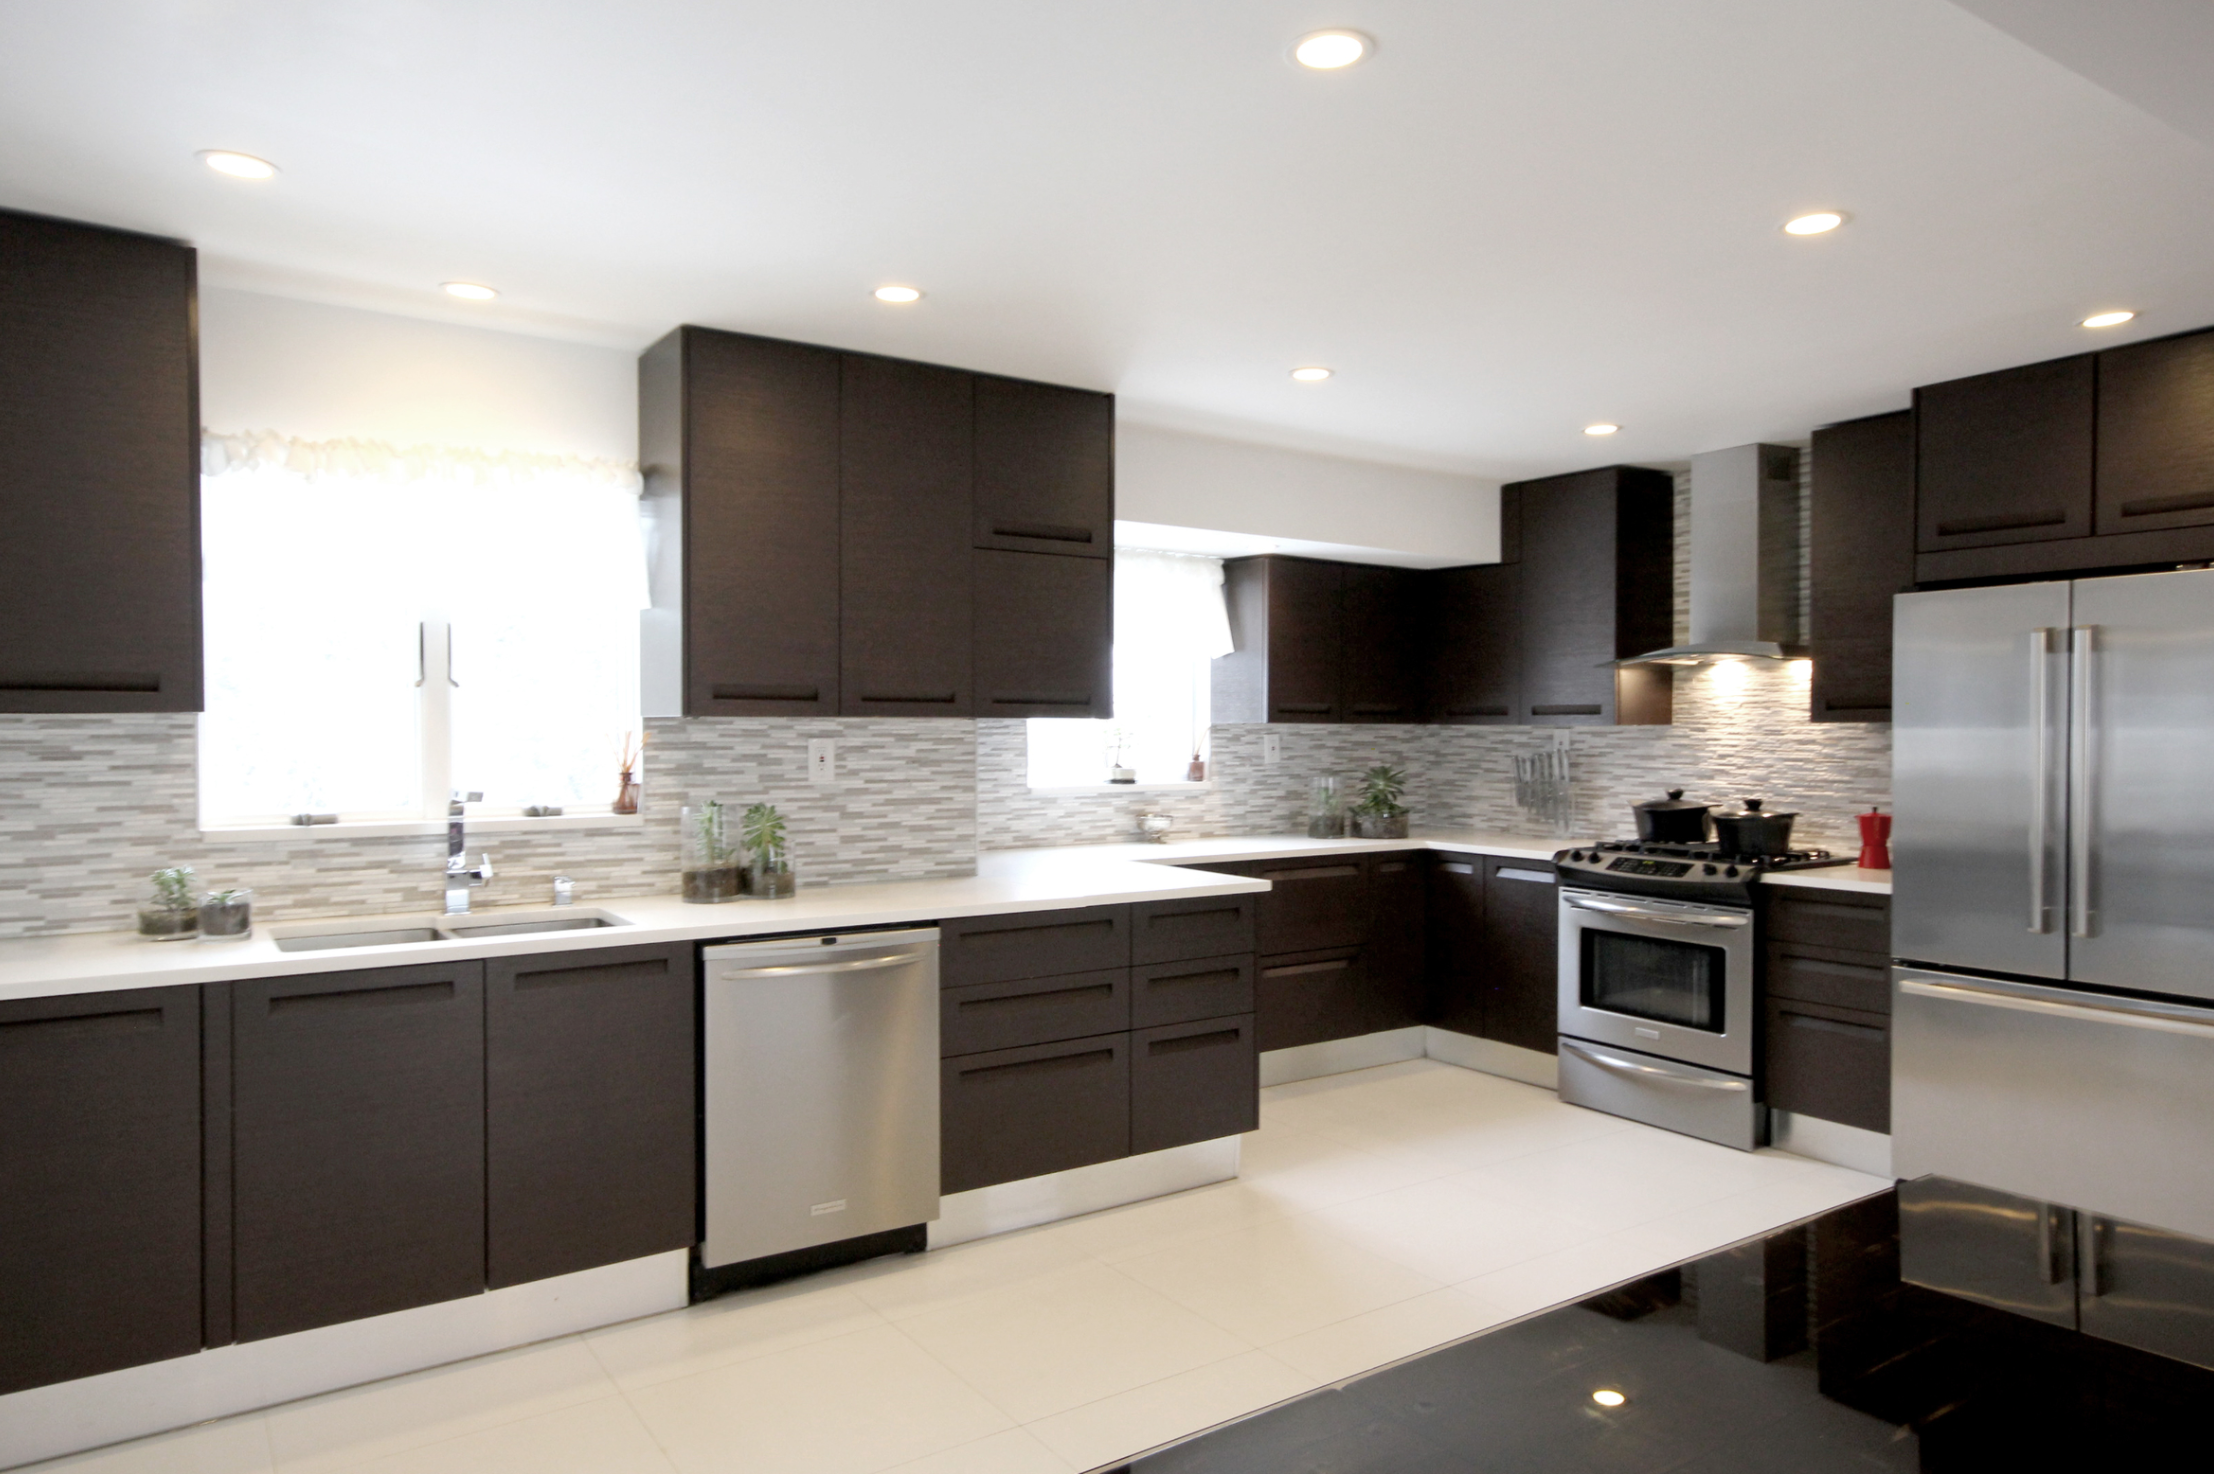 Kitchen Design Blog Stories Before And Afters Teoria Remodeling New York Italian Cabinetry Custom Millwork